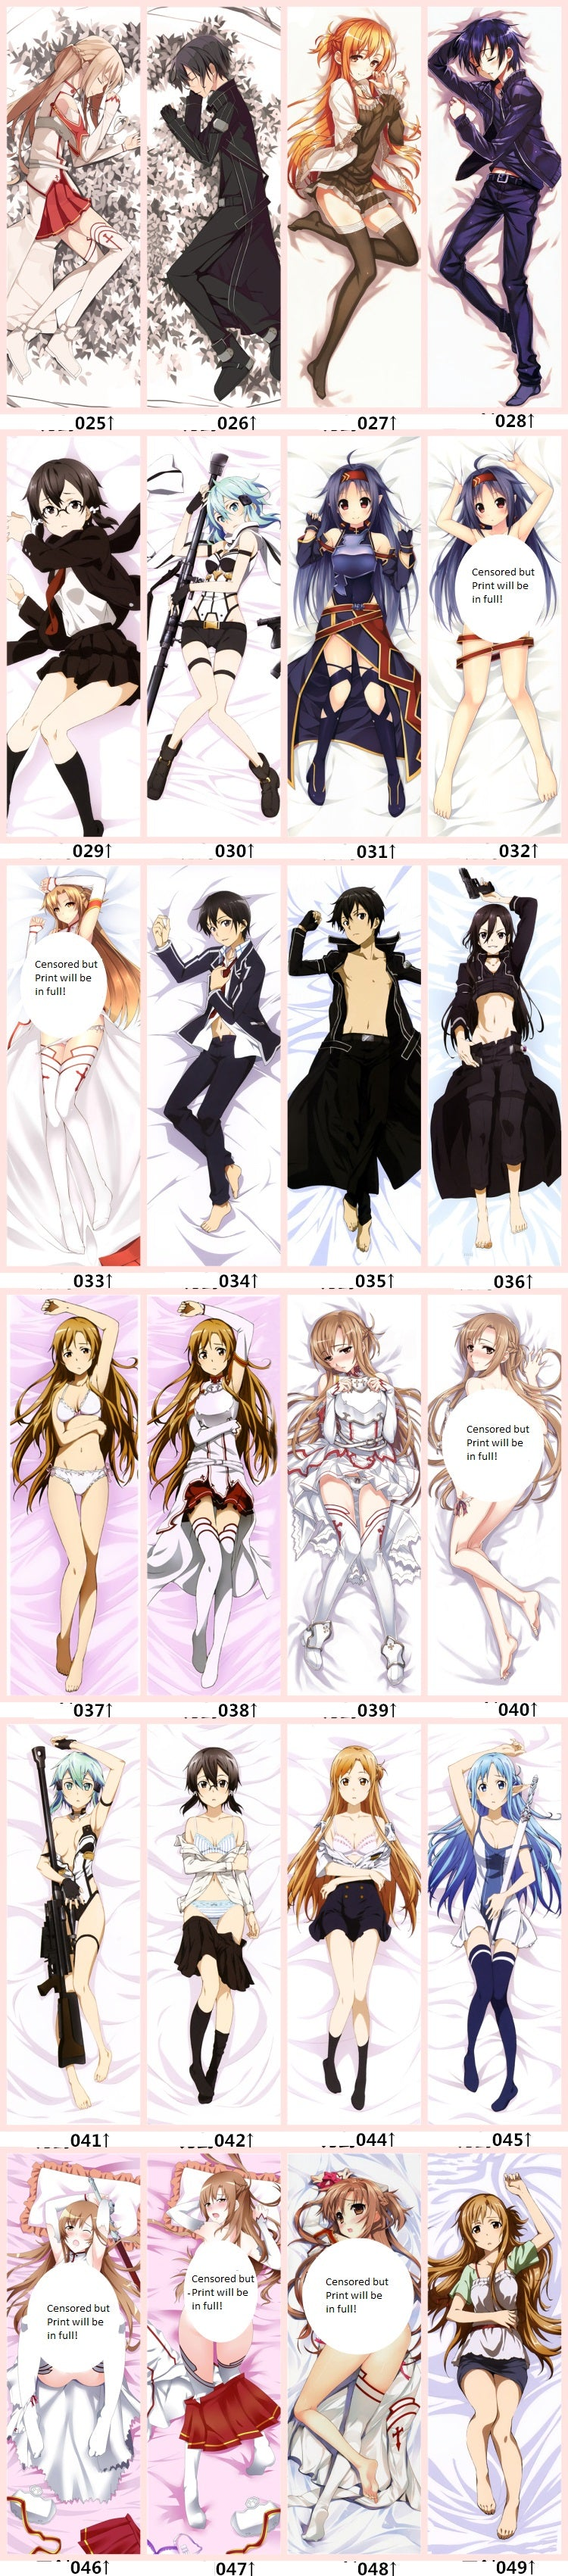 Sword Art Online Body Pillow